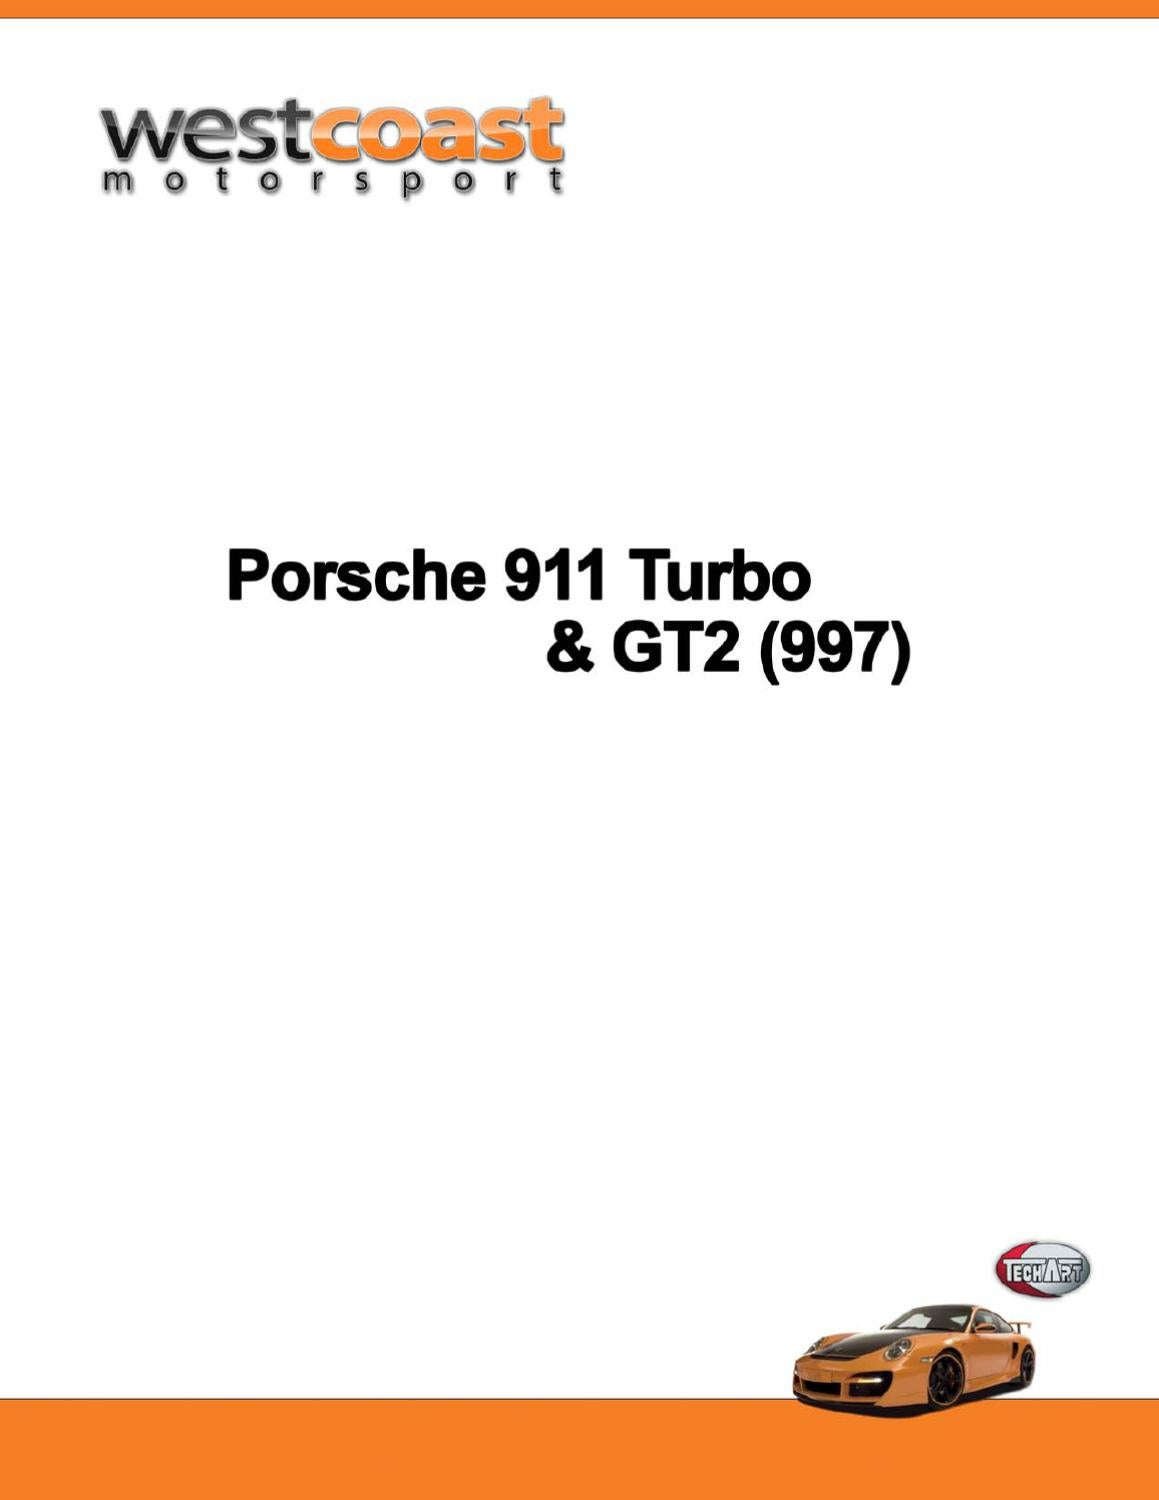 Techart Price List For Porsche 911 Turbo Gt2 997 By West